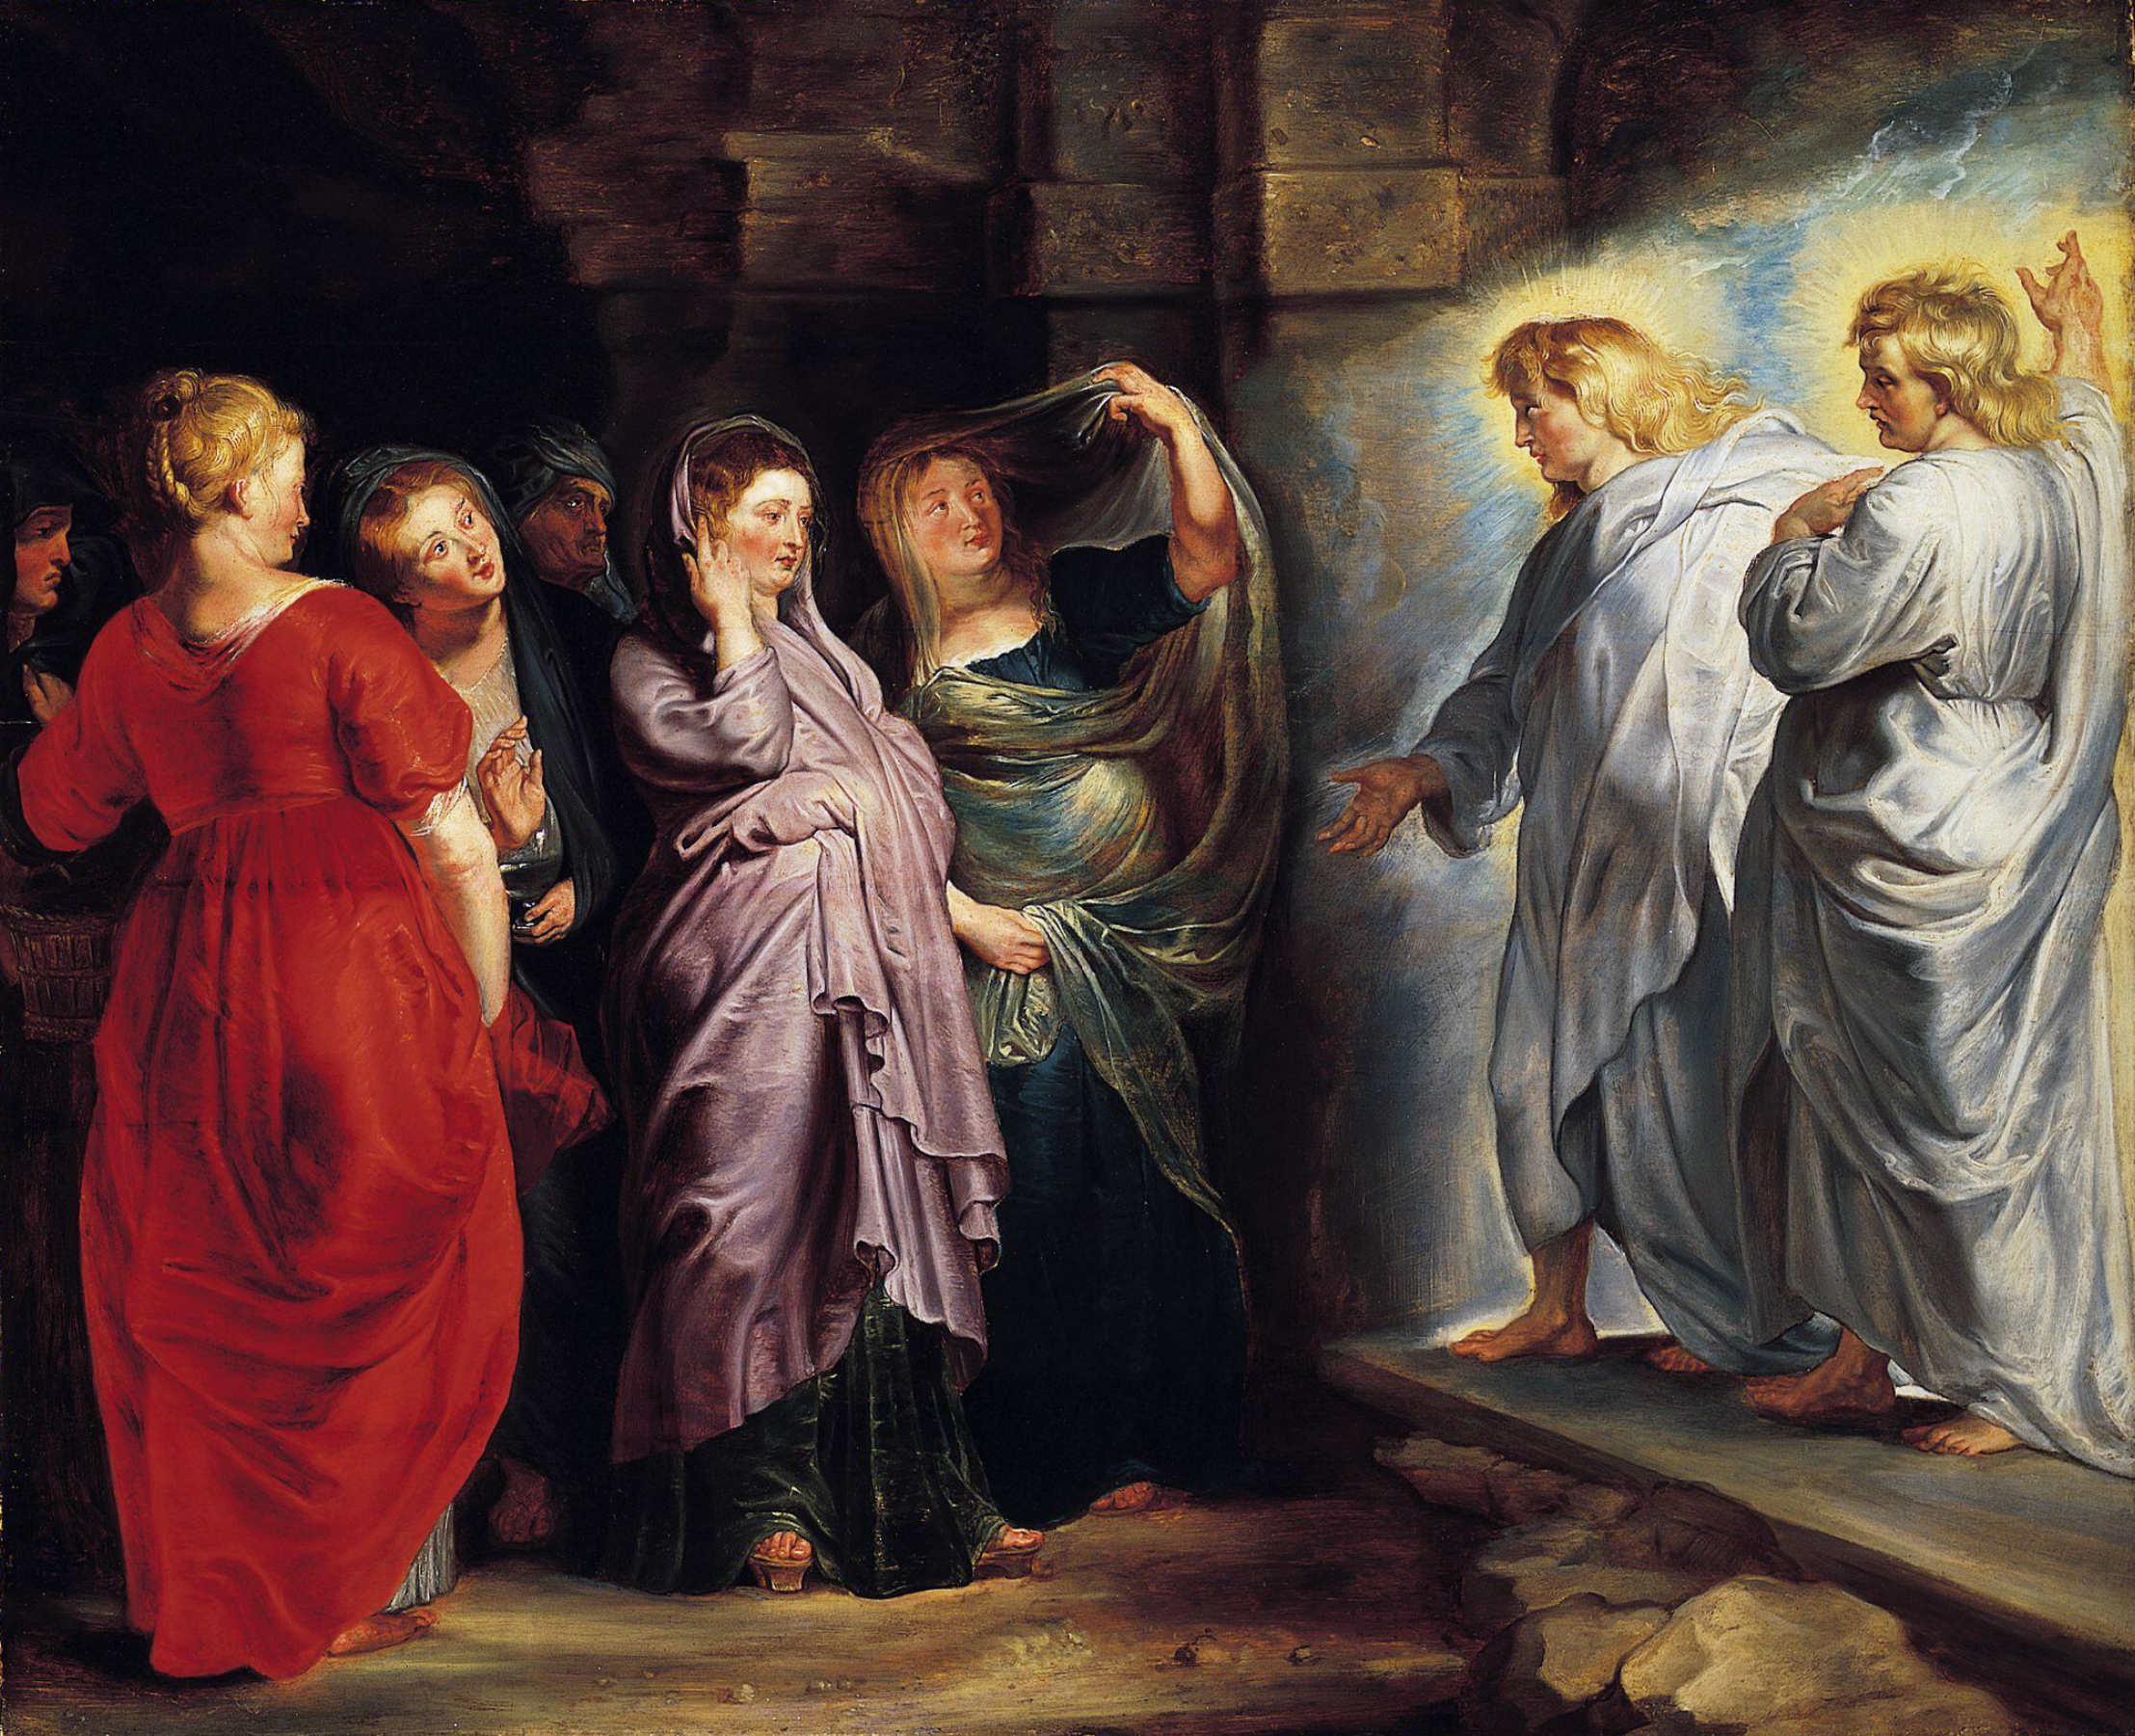 http://upload.wikimedia.org/wikipedia/commons/2/21/The_Holy_Women_at_the_Sepulchre_by_Peter_Paul_Rubens.jpg